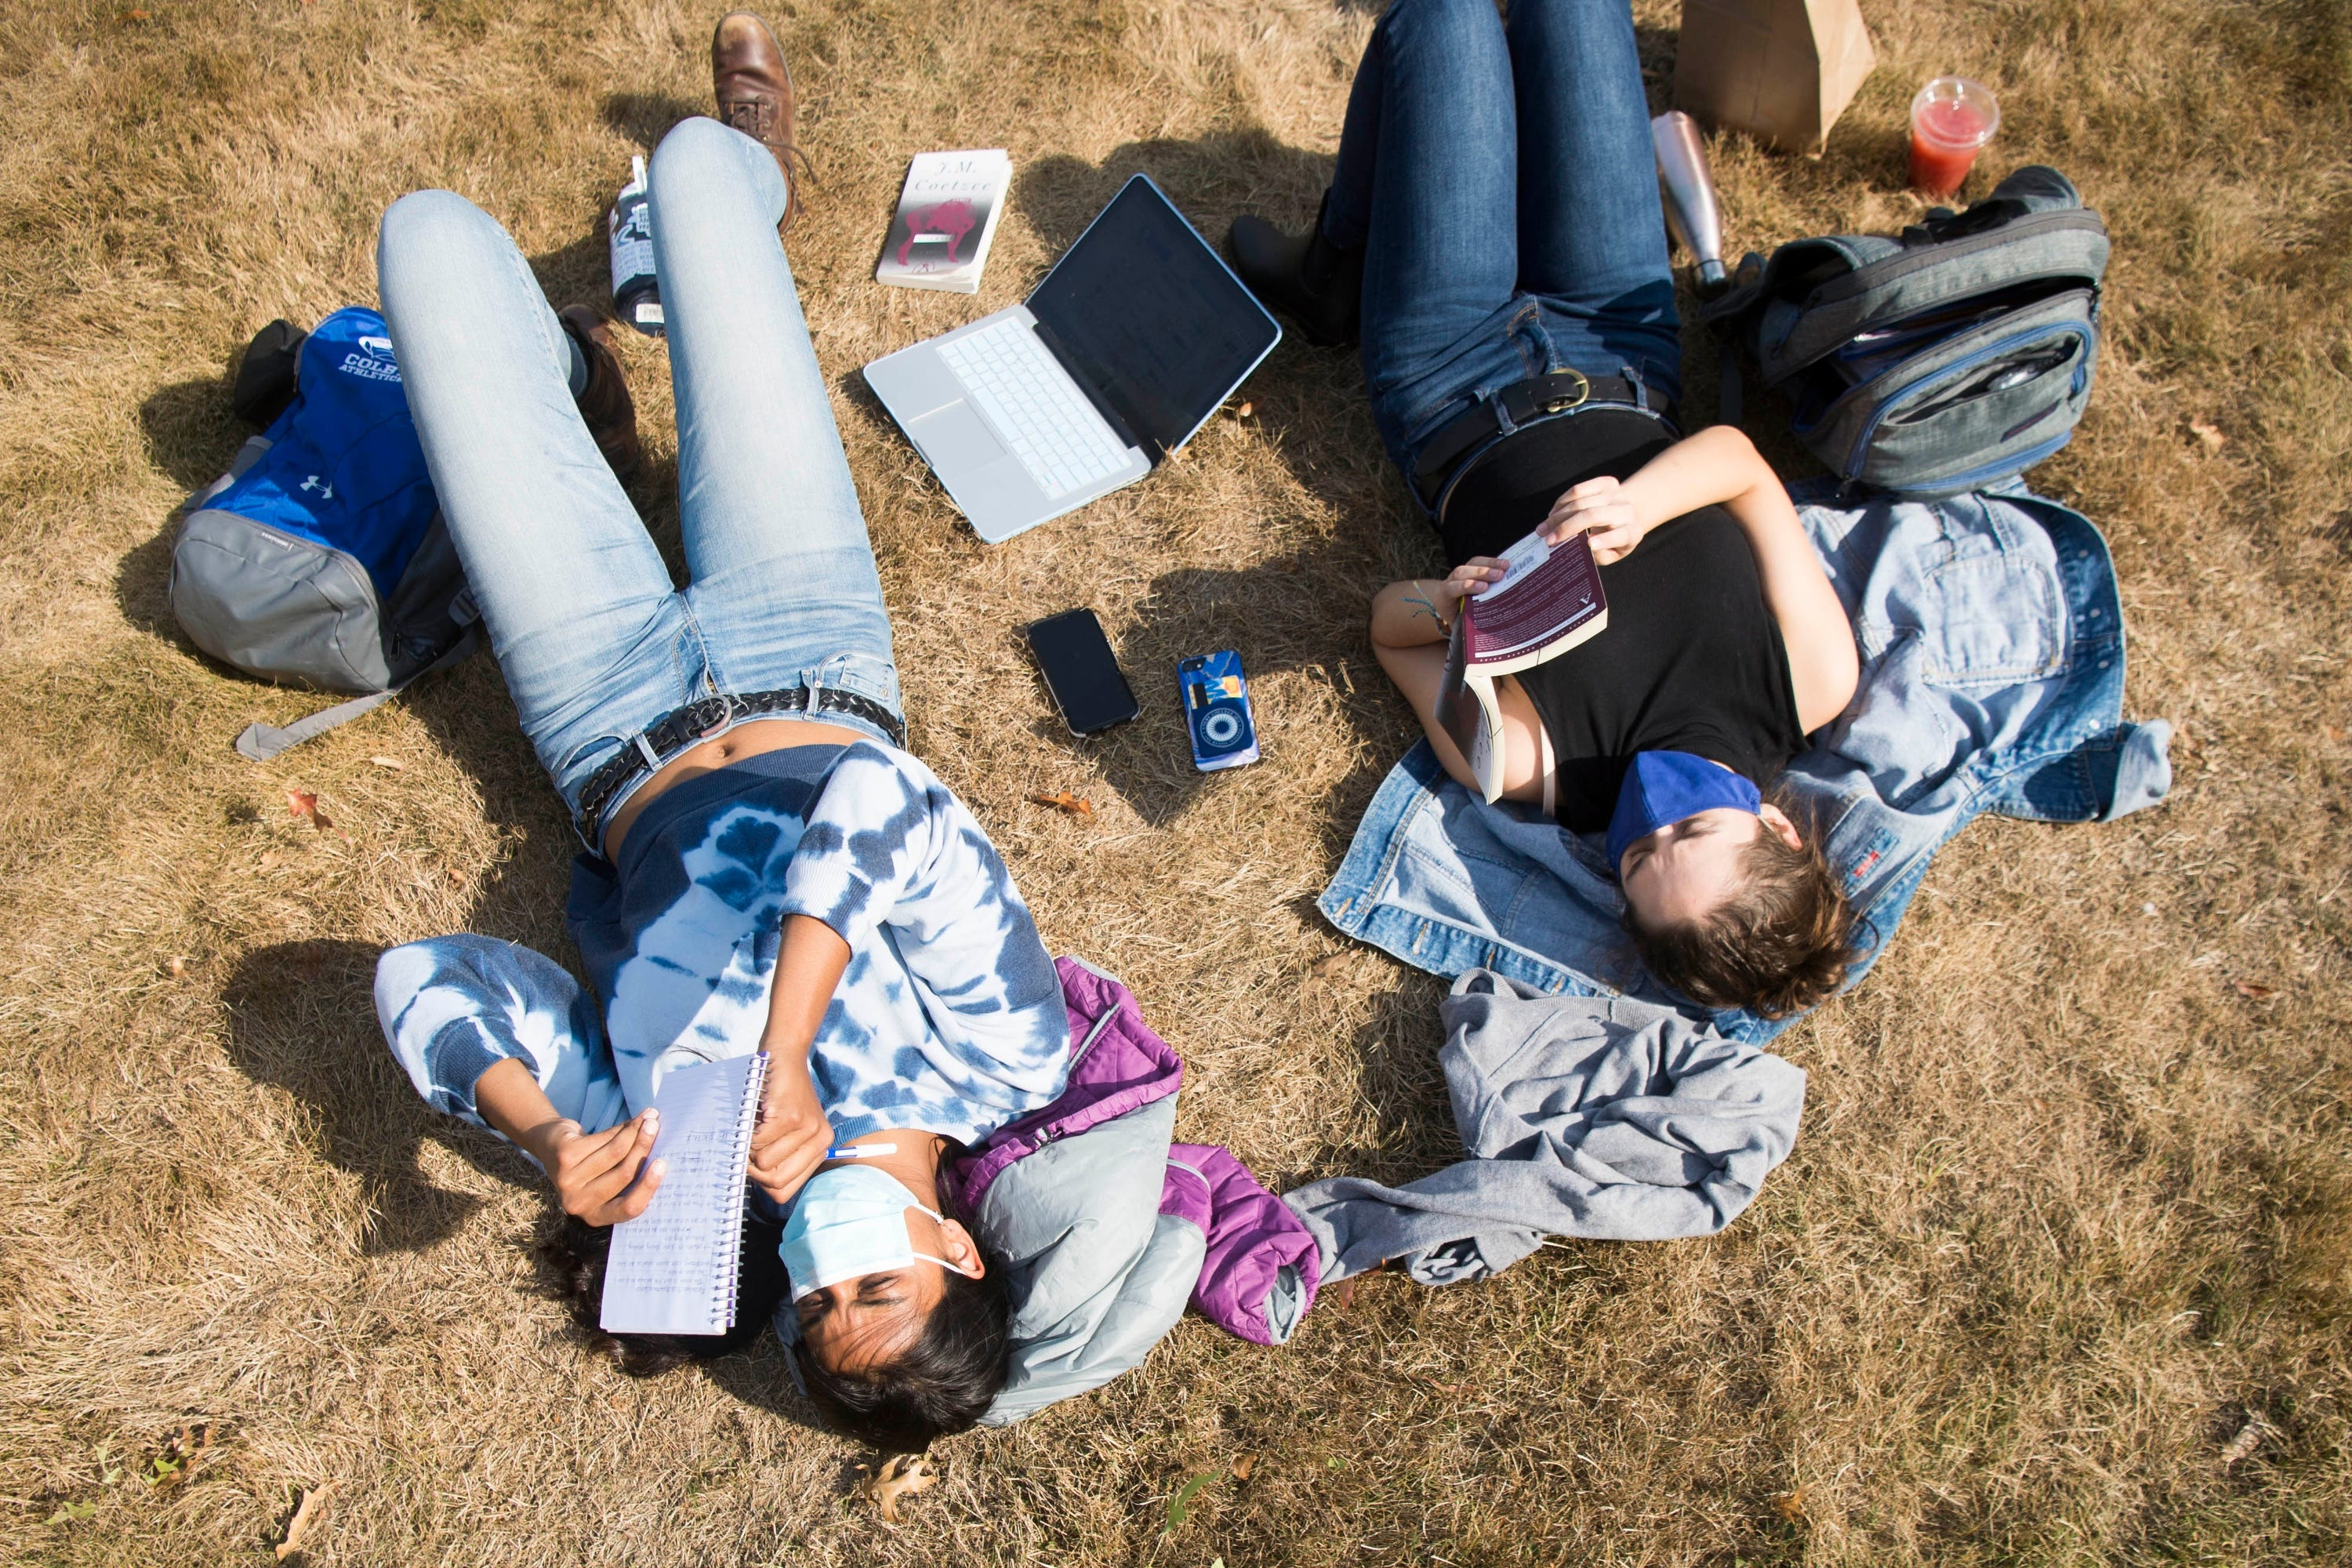 Colby College sophomore Mahika Gupta, 19, left, and junior Annie Sternberg, 20, soak up some rays on campus.